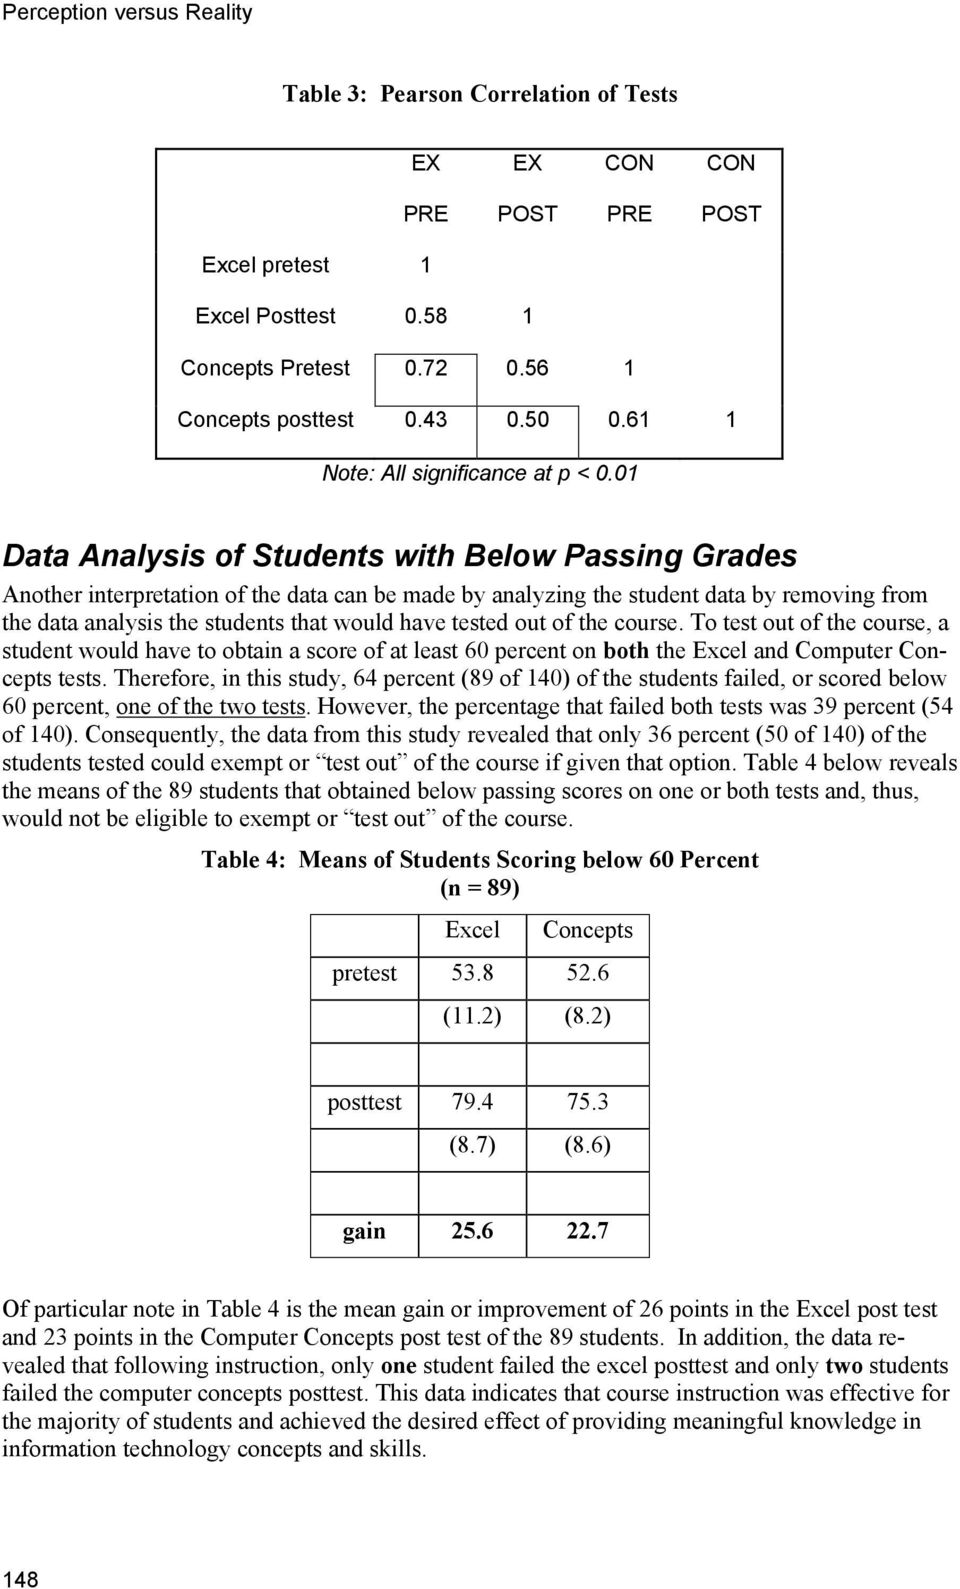 01 Data Analysis of Students with Below Passing Grades Another interpretation of the data can be made by analyzing the student data by removing from the data analysis the students that would have